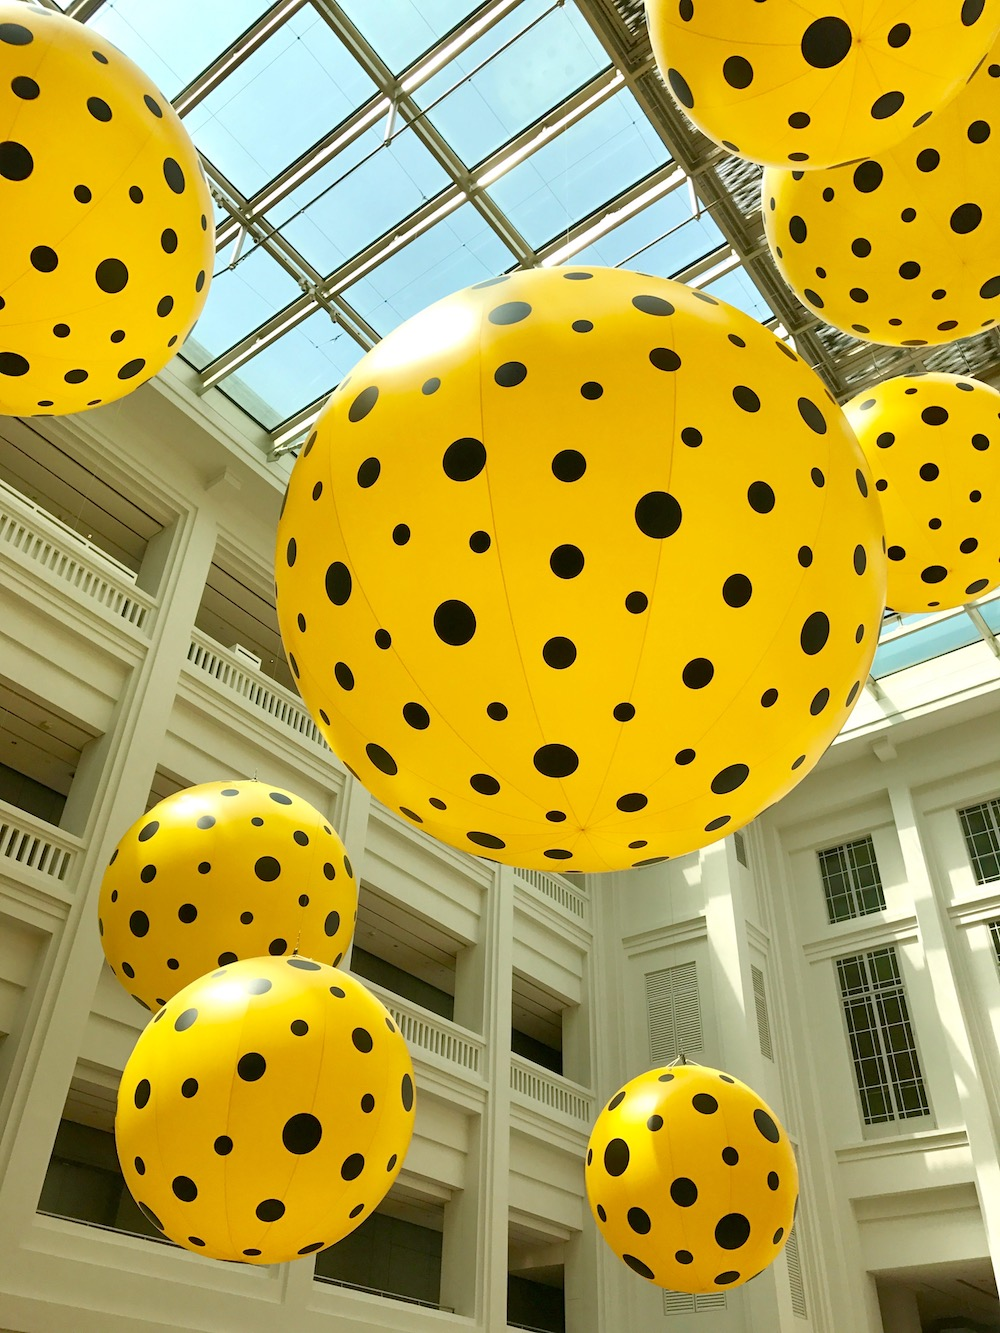 Yellow and black dotted balloons |curlytraveller.com